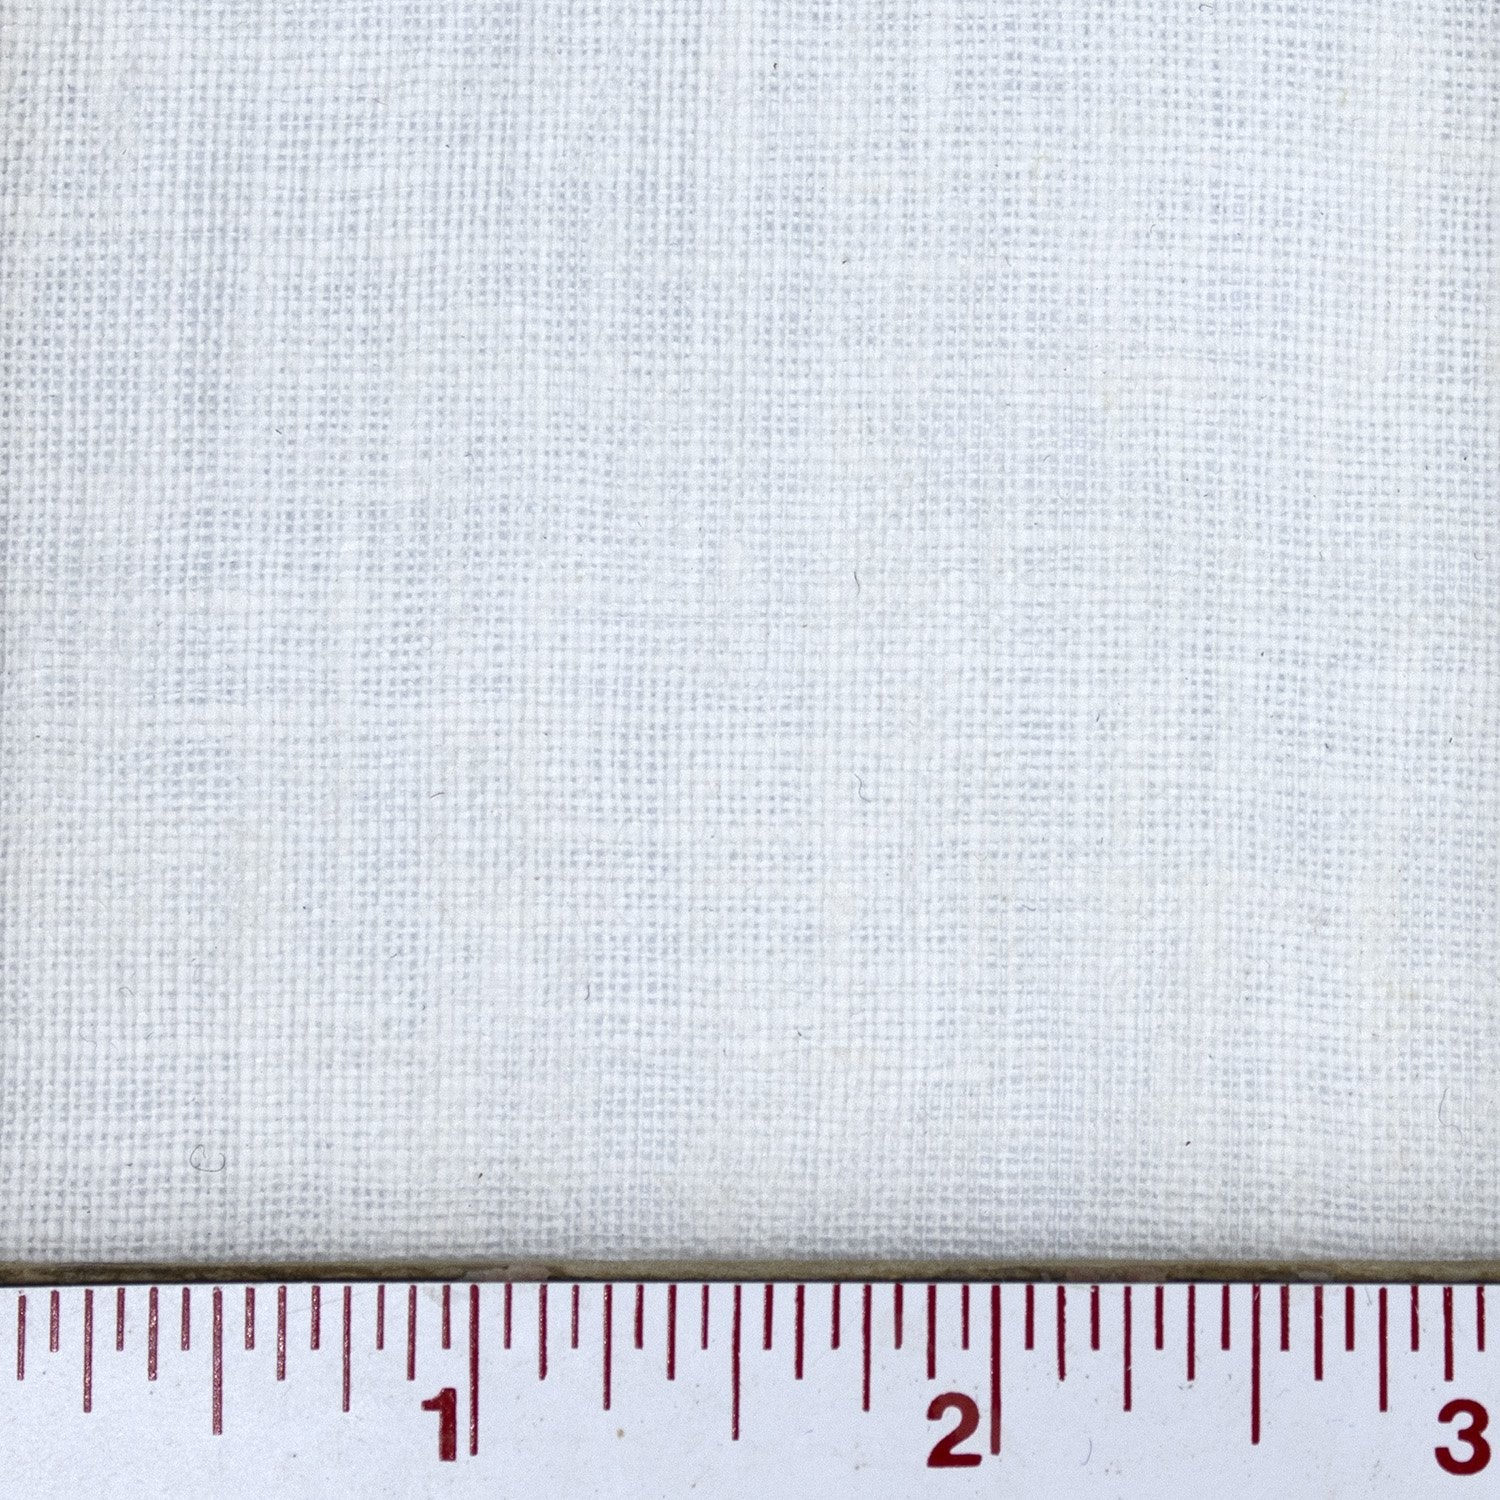 White Glazed Linen - $28.00 yd.